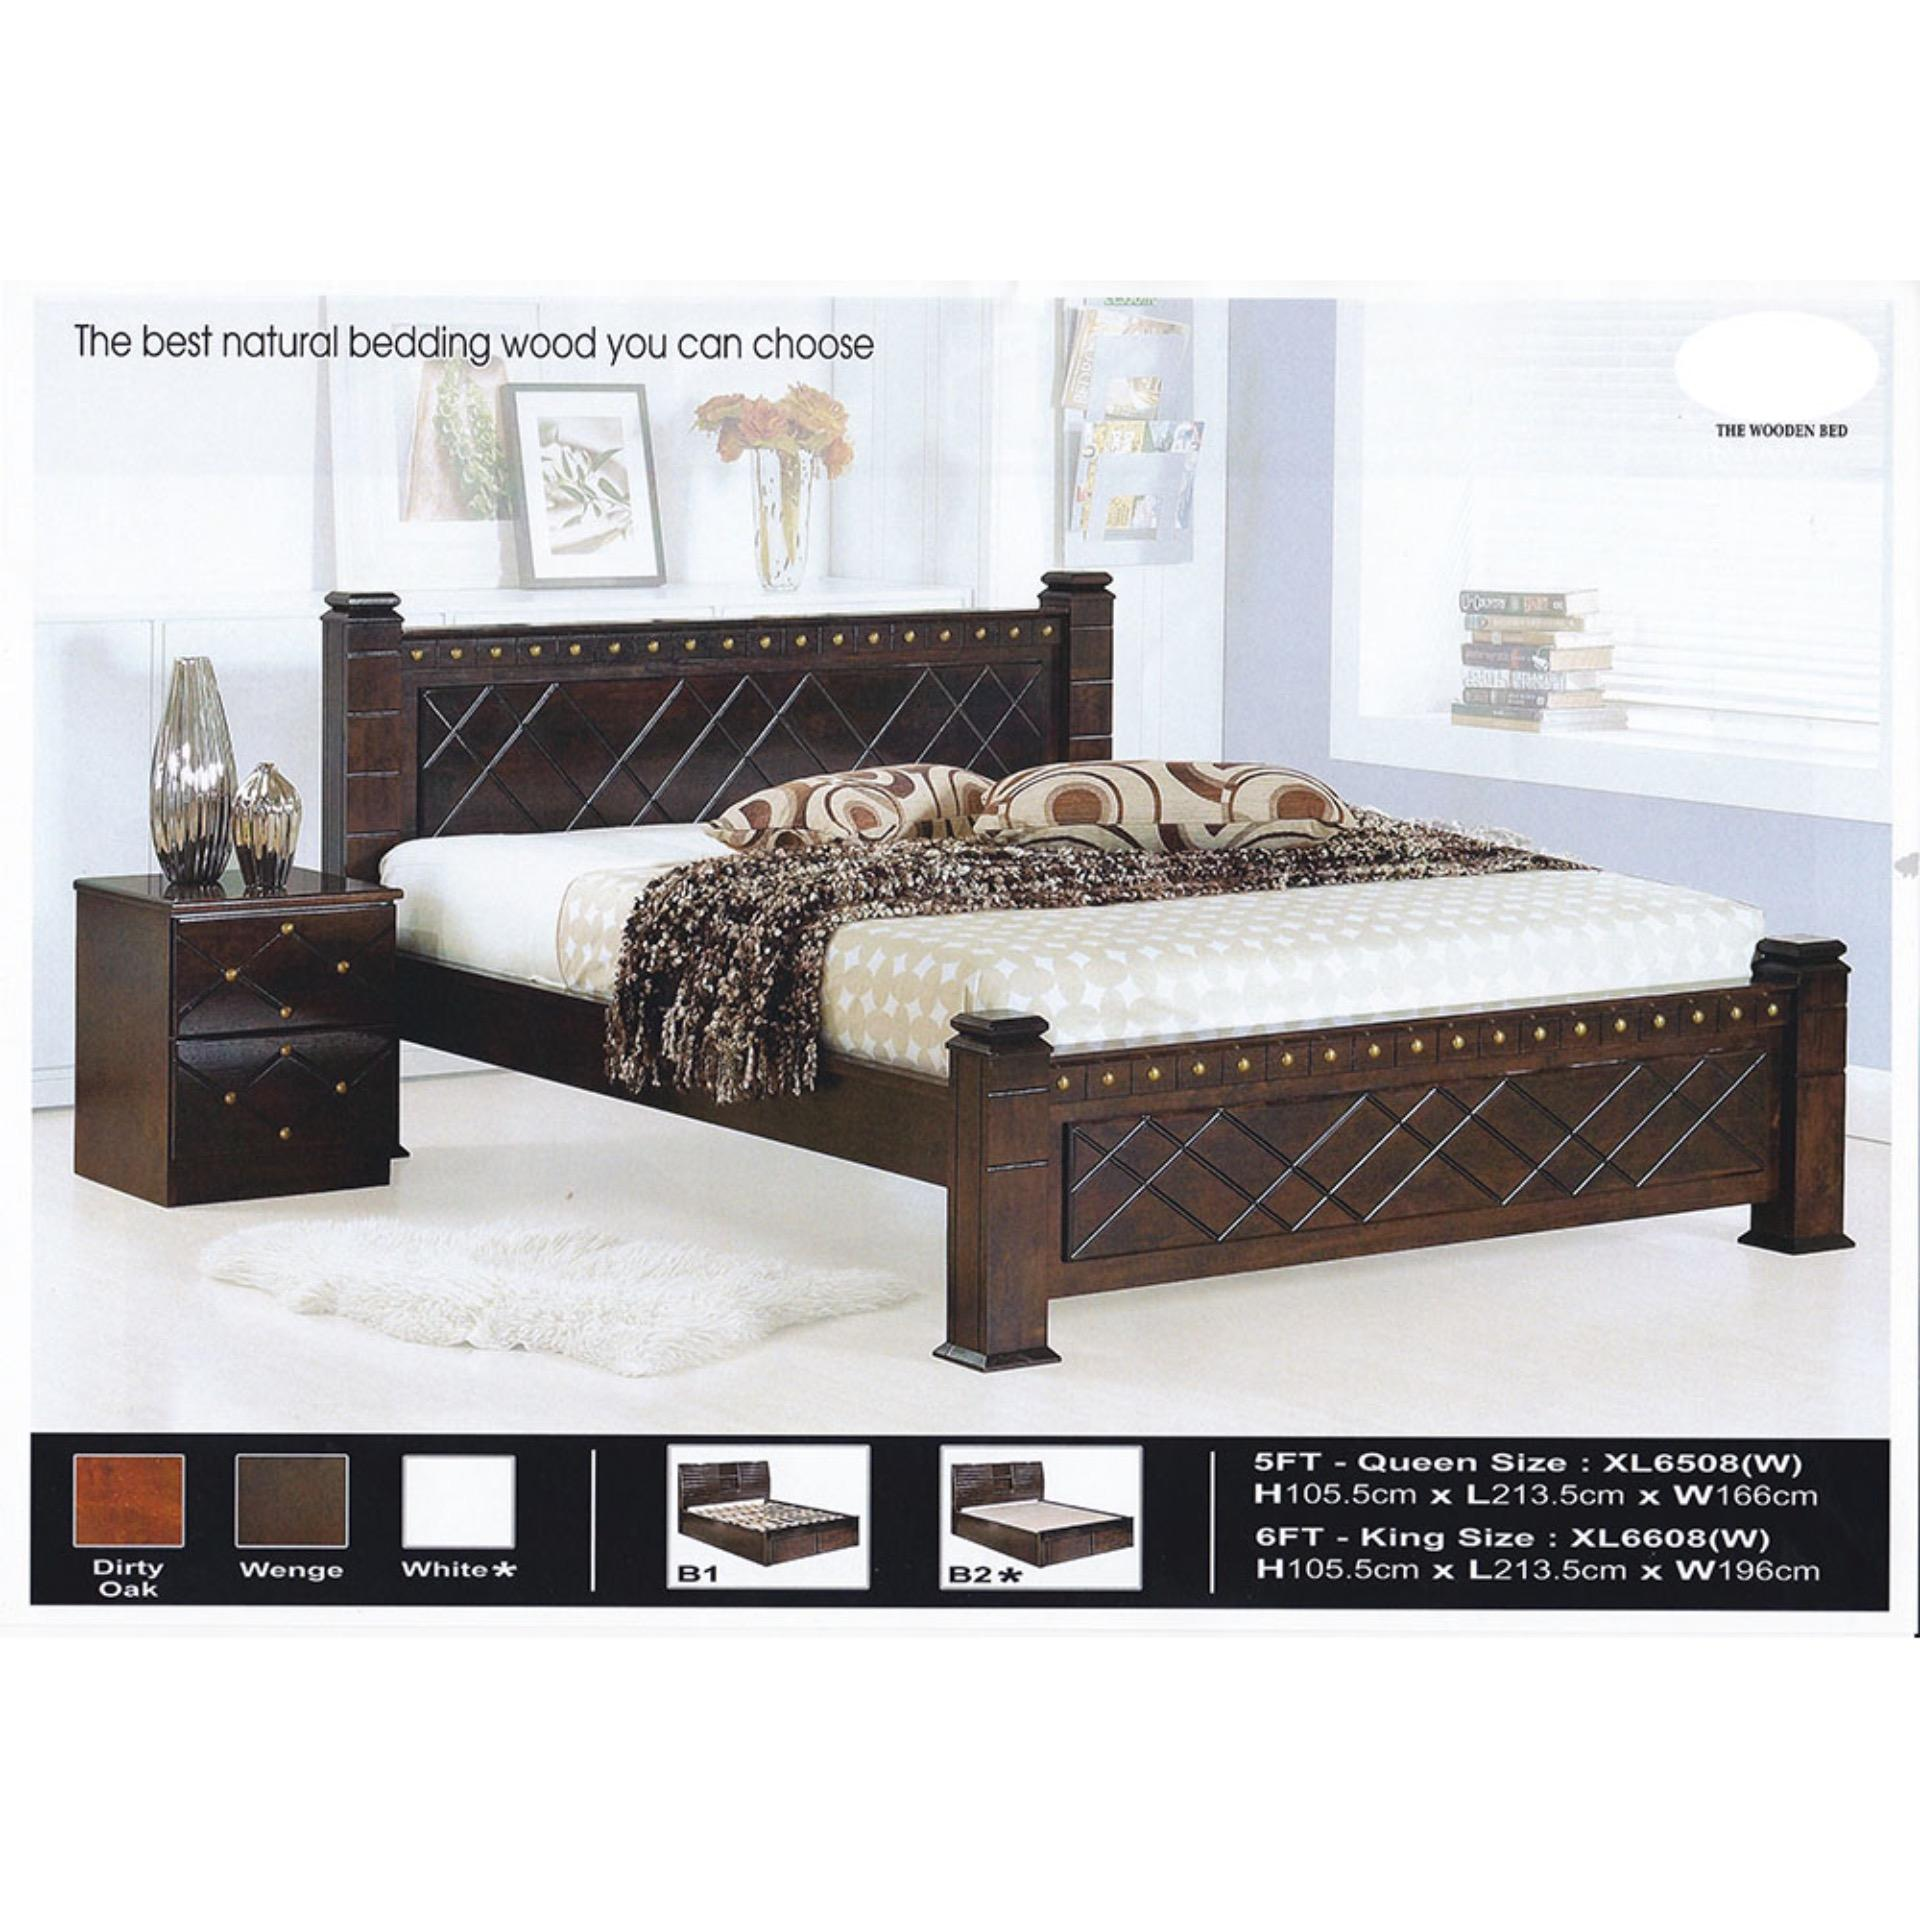 Solid Wood Strong Queen Size Wooden (end 5/2/2021 12:00 AM)